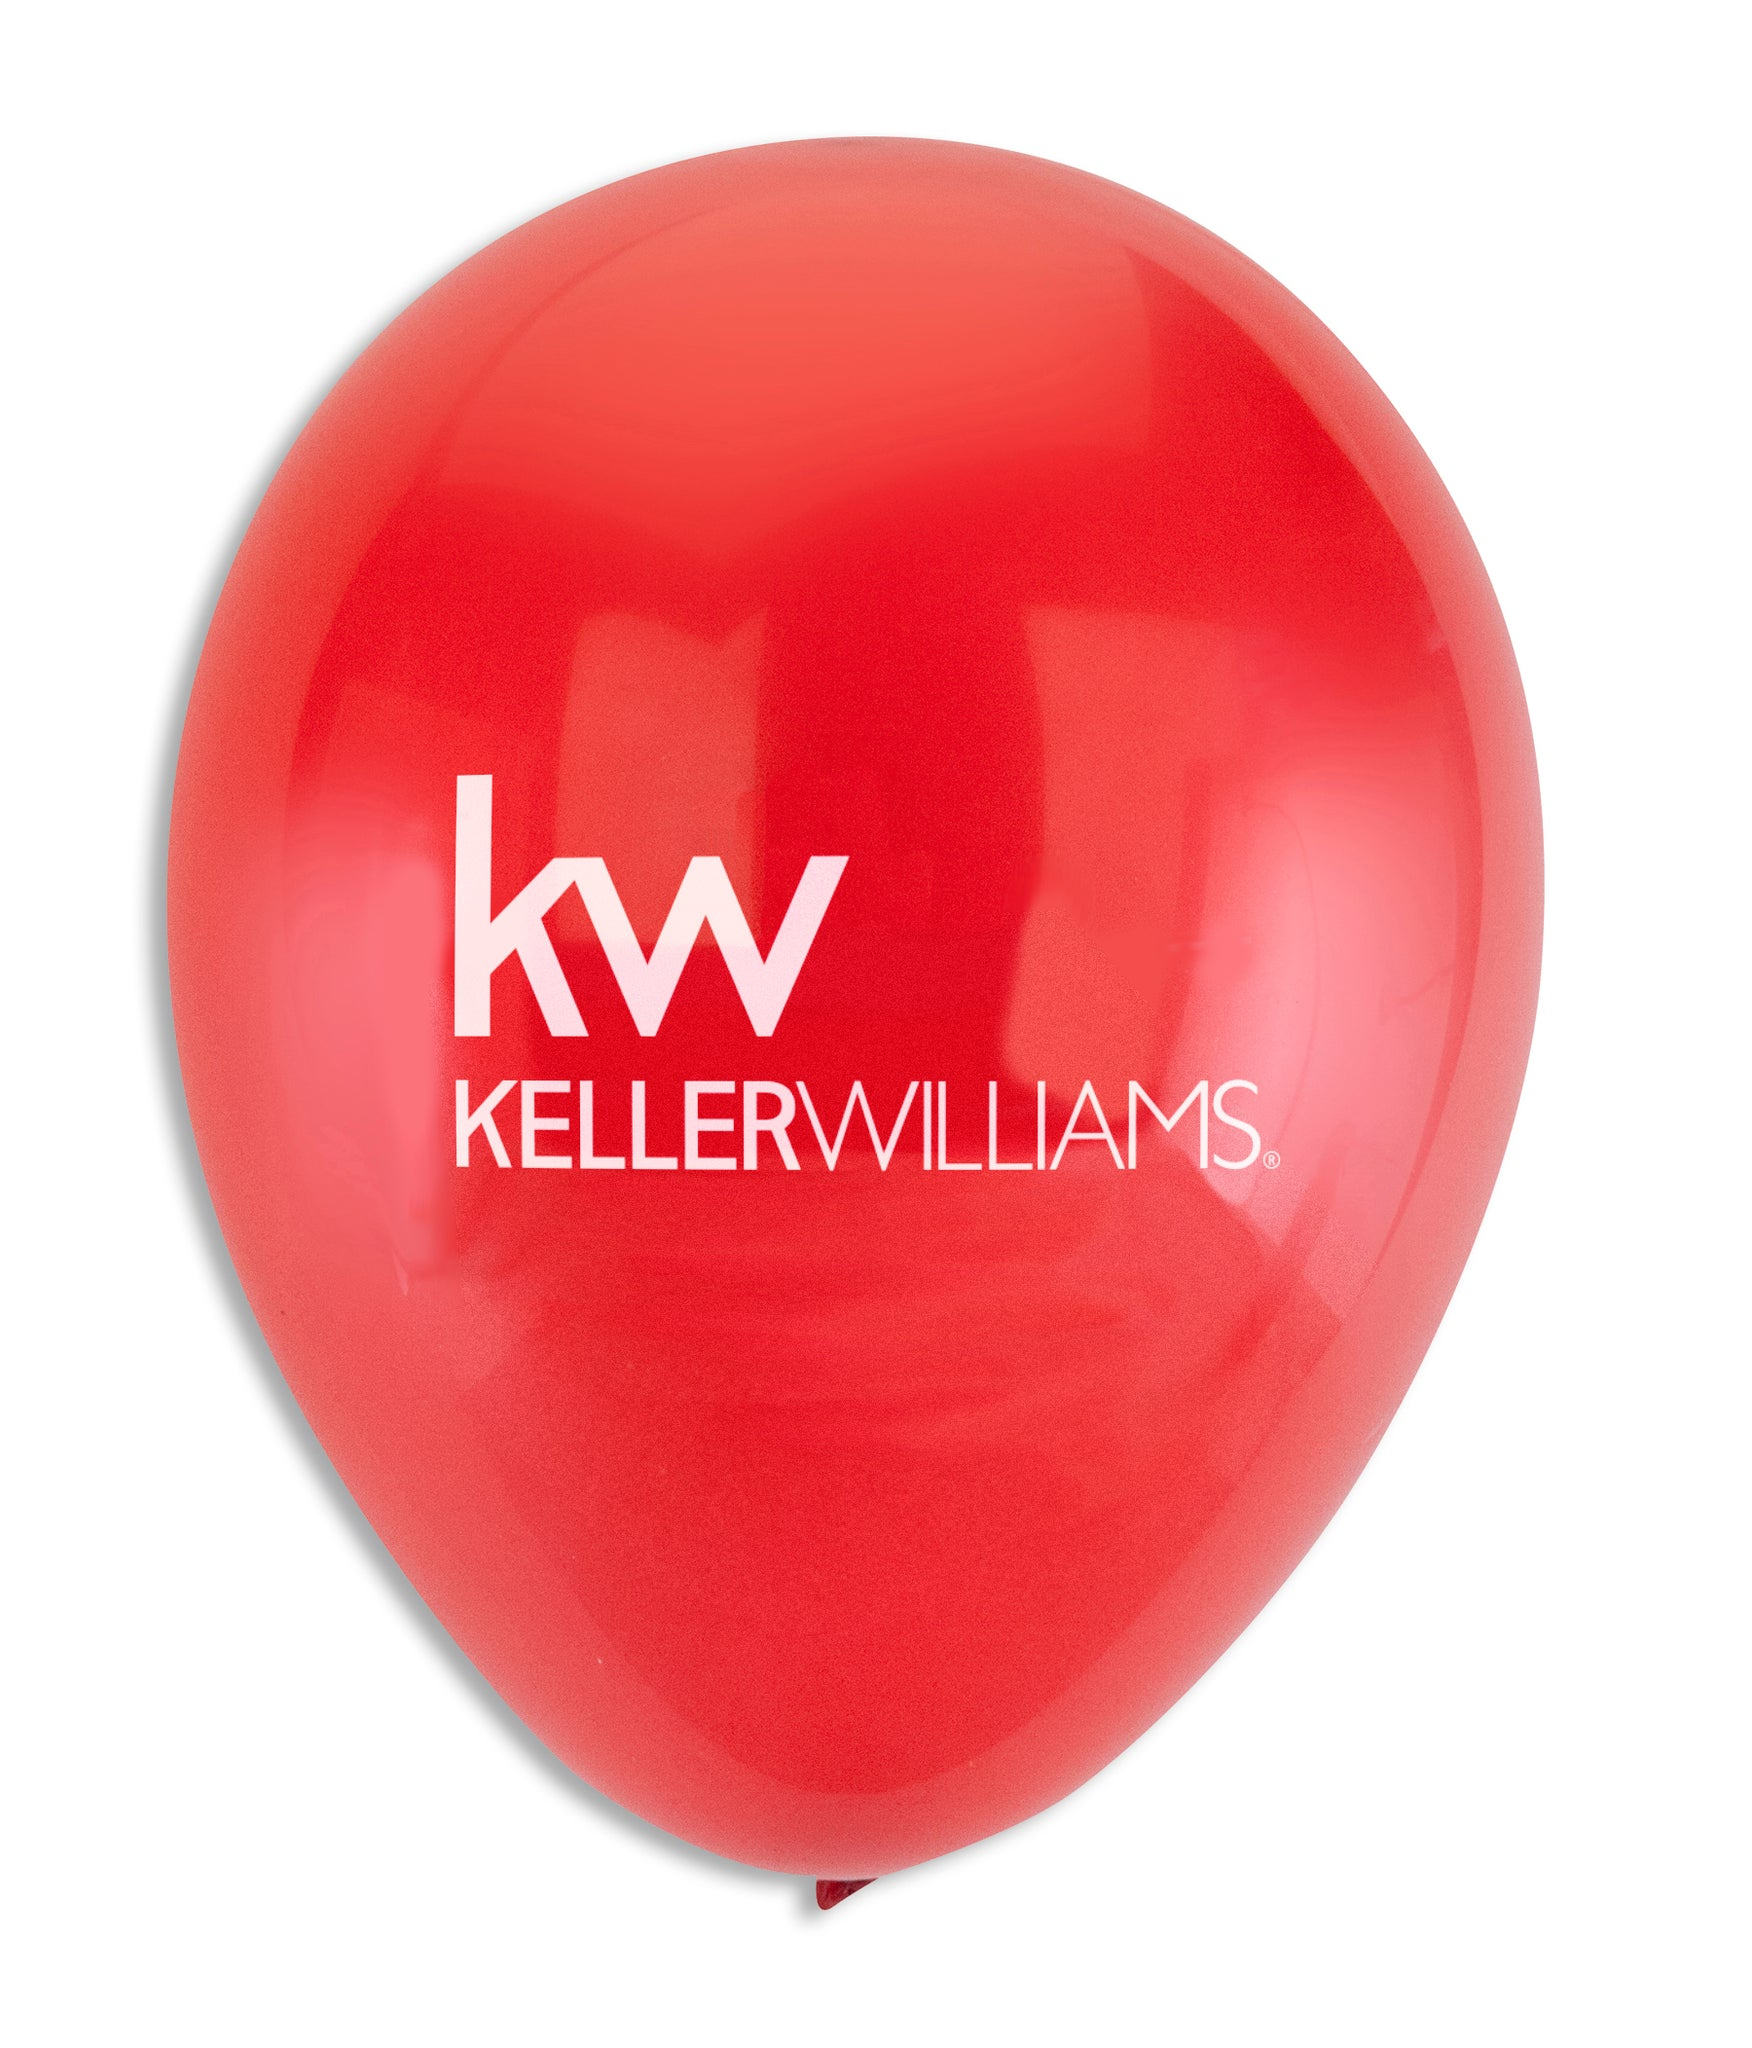 Keller Williams Balloons - Red